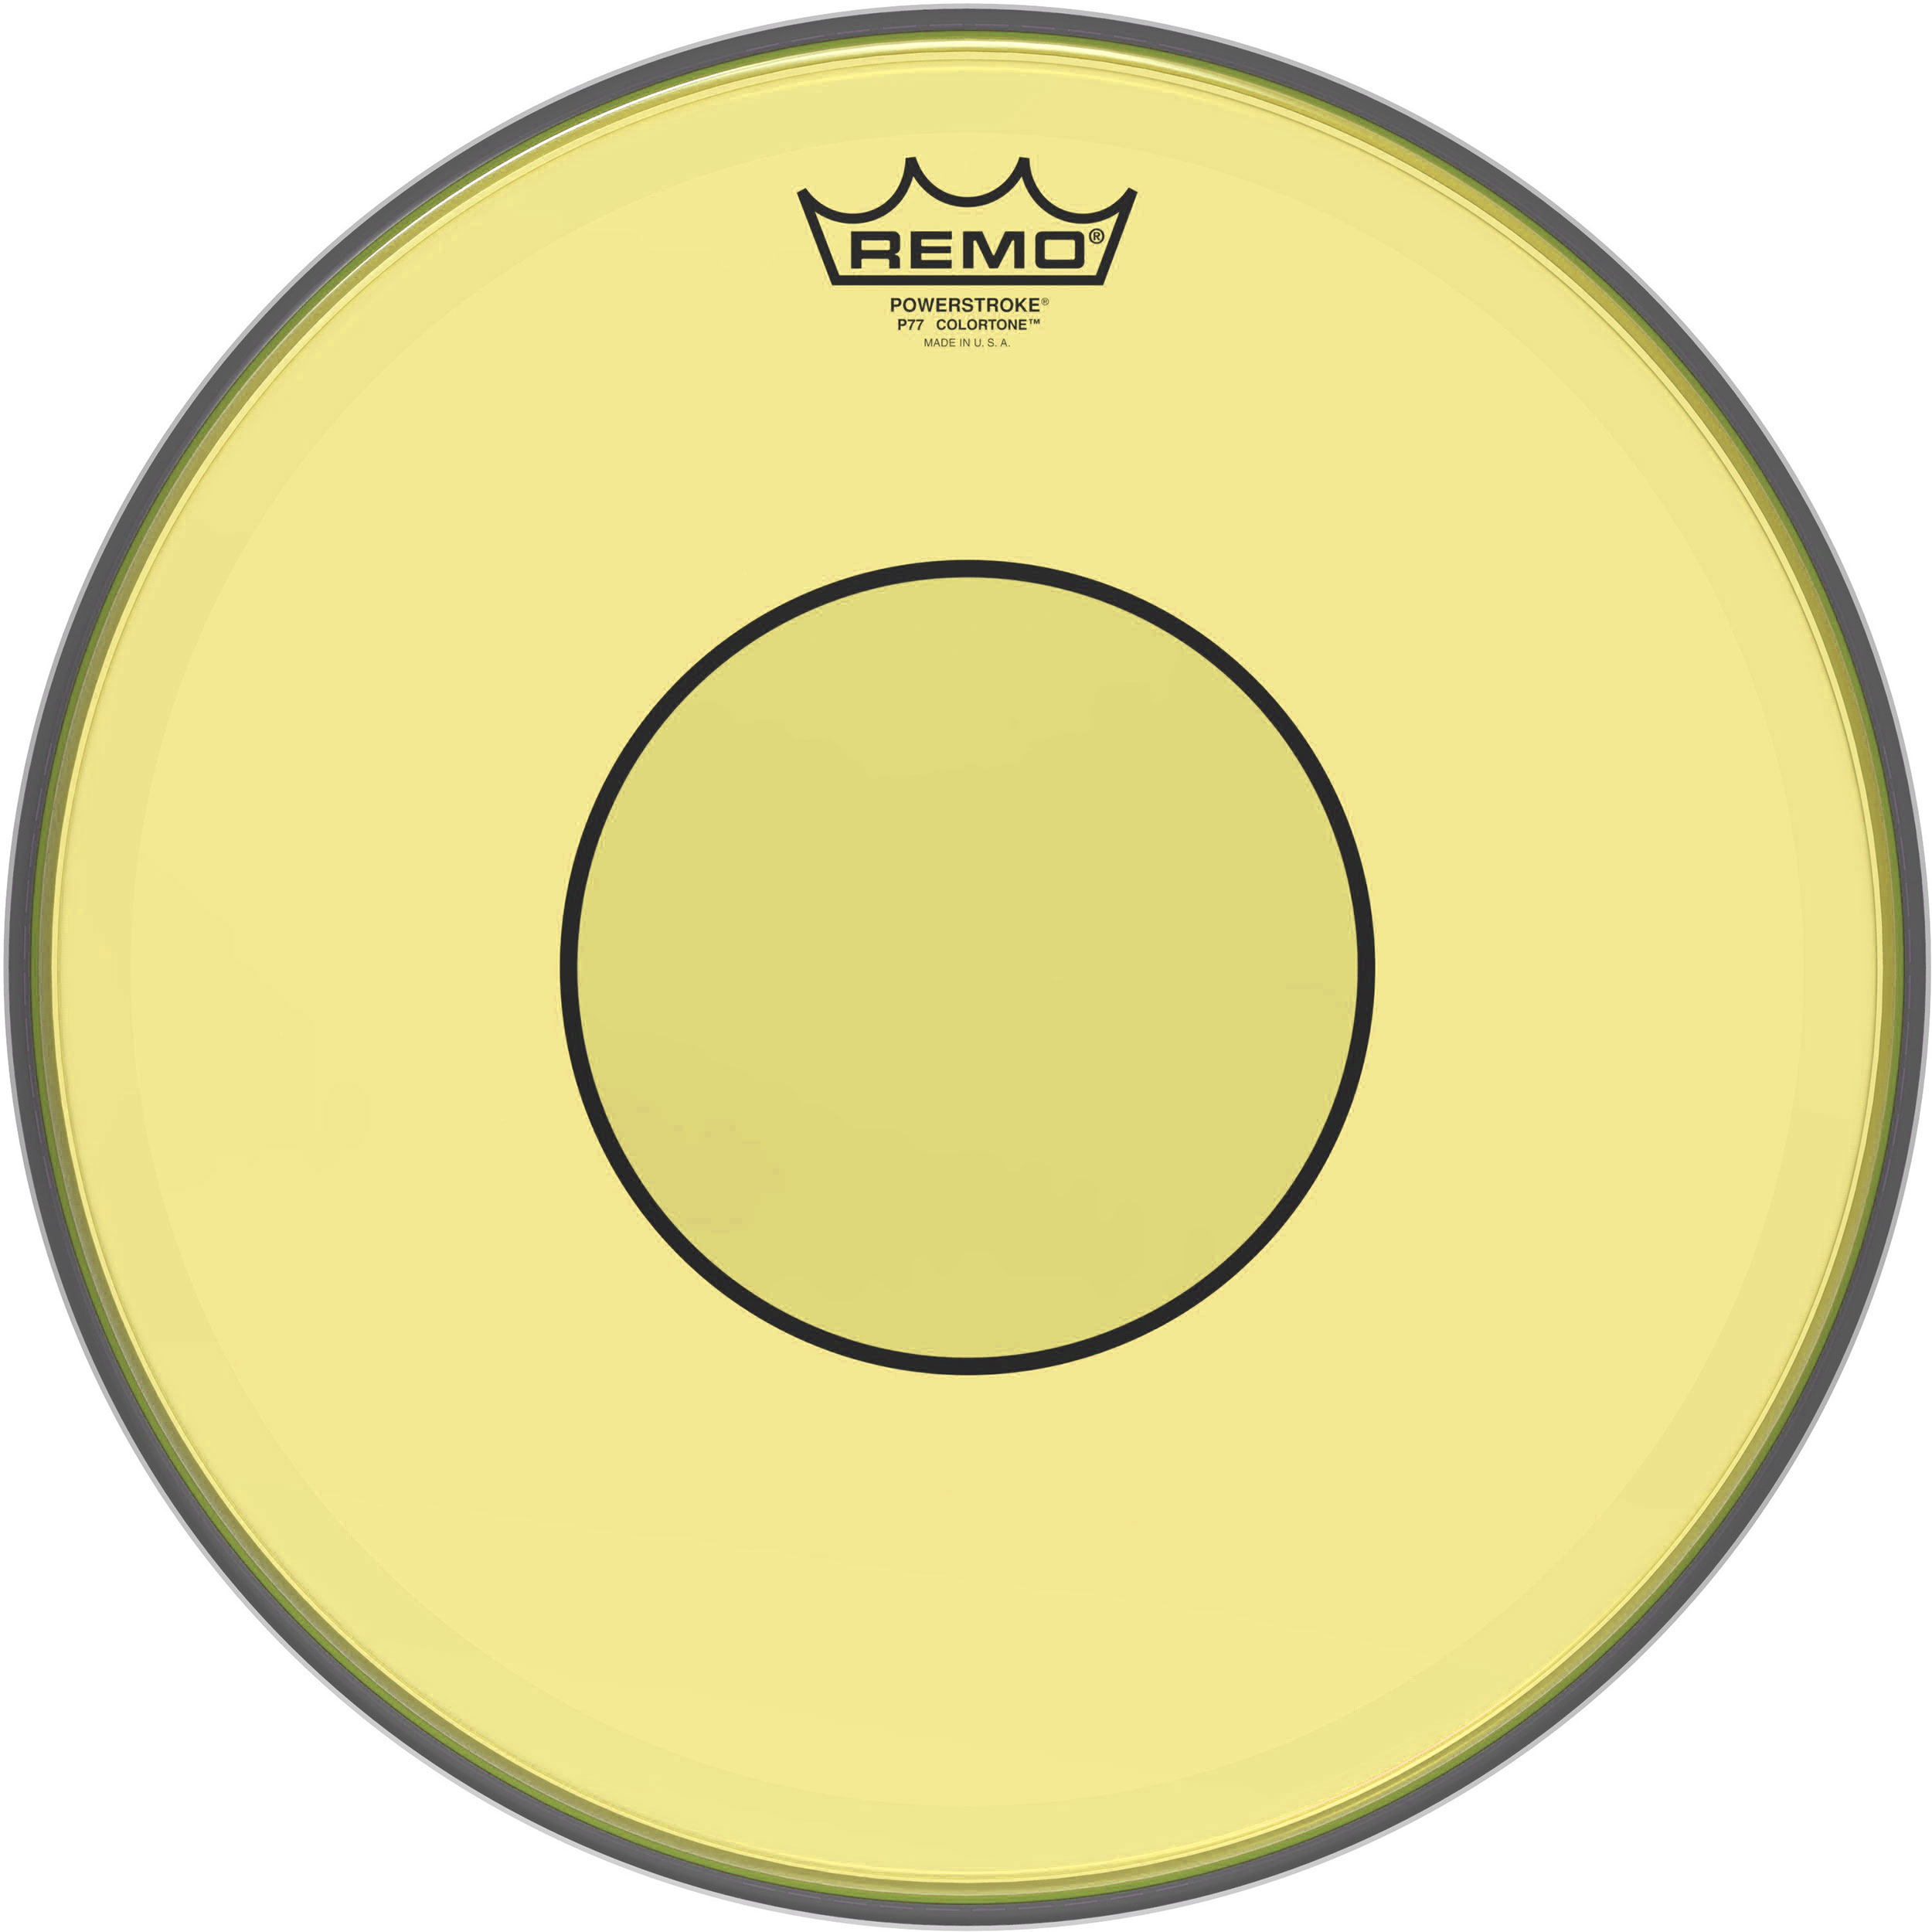 "Remo 13"" Powerstroke 77 Colortone Yellow Drum Head"